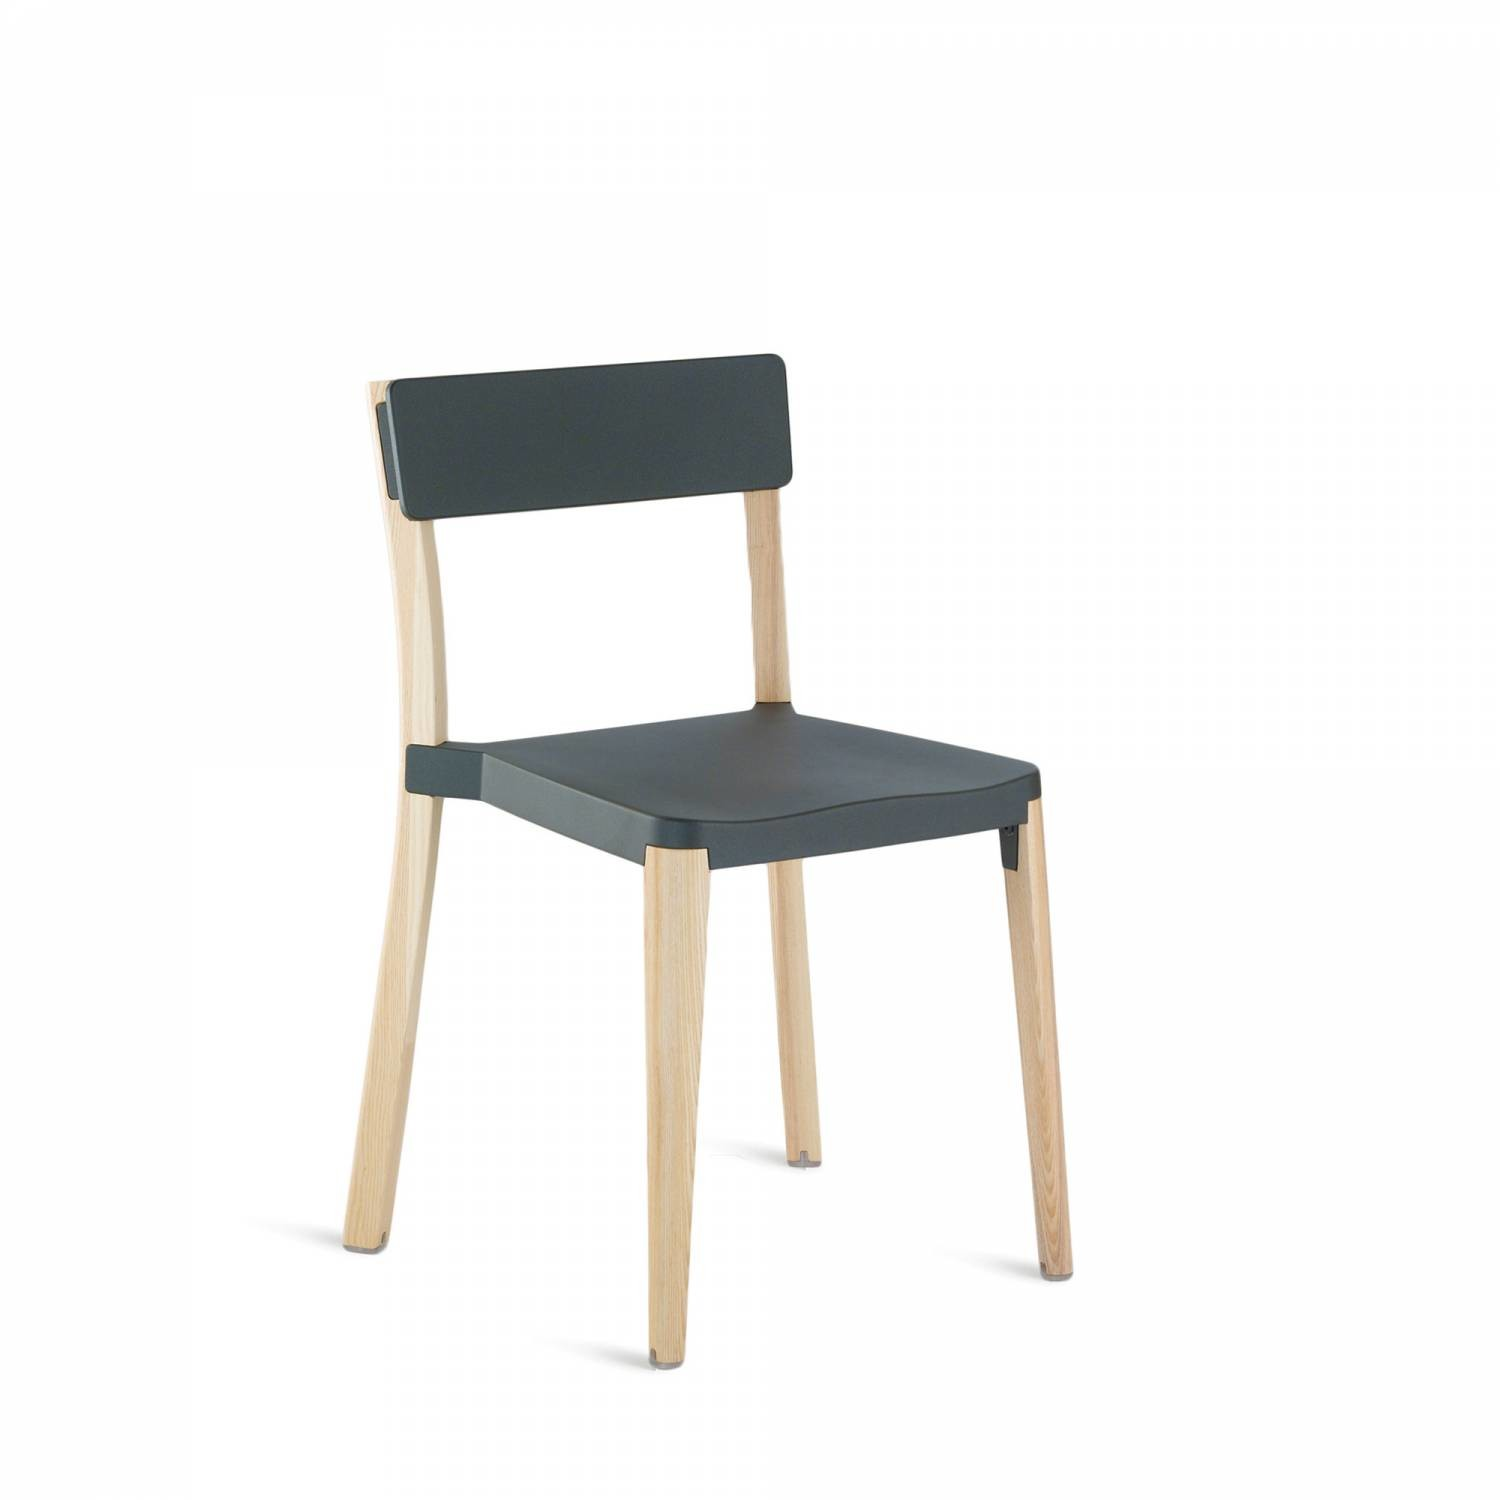 Lancaster Stacking Chair Dark Grey, Light Wood Base, Without Seat Pad, Without Back Pad